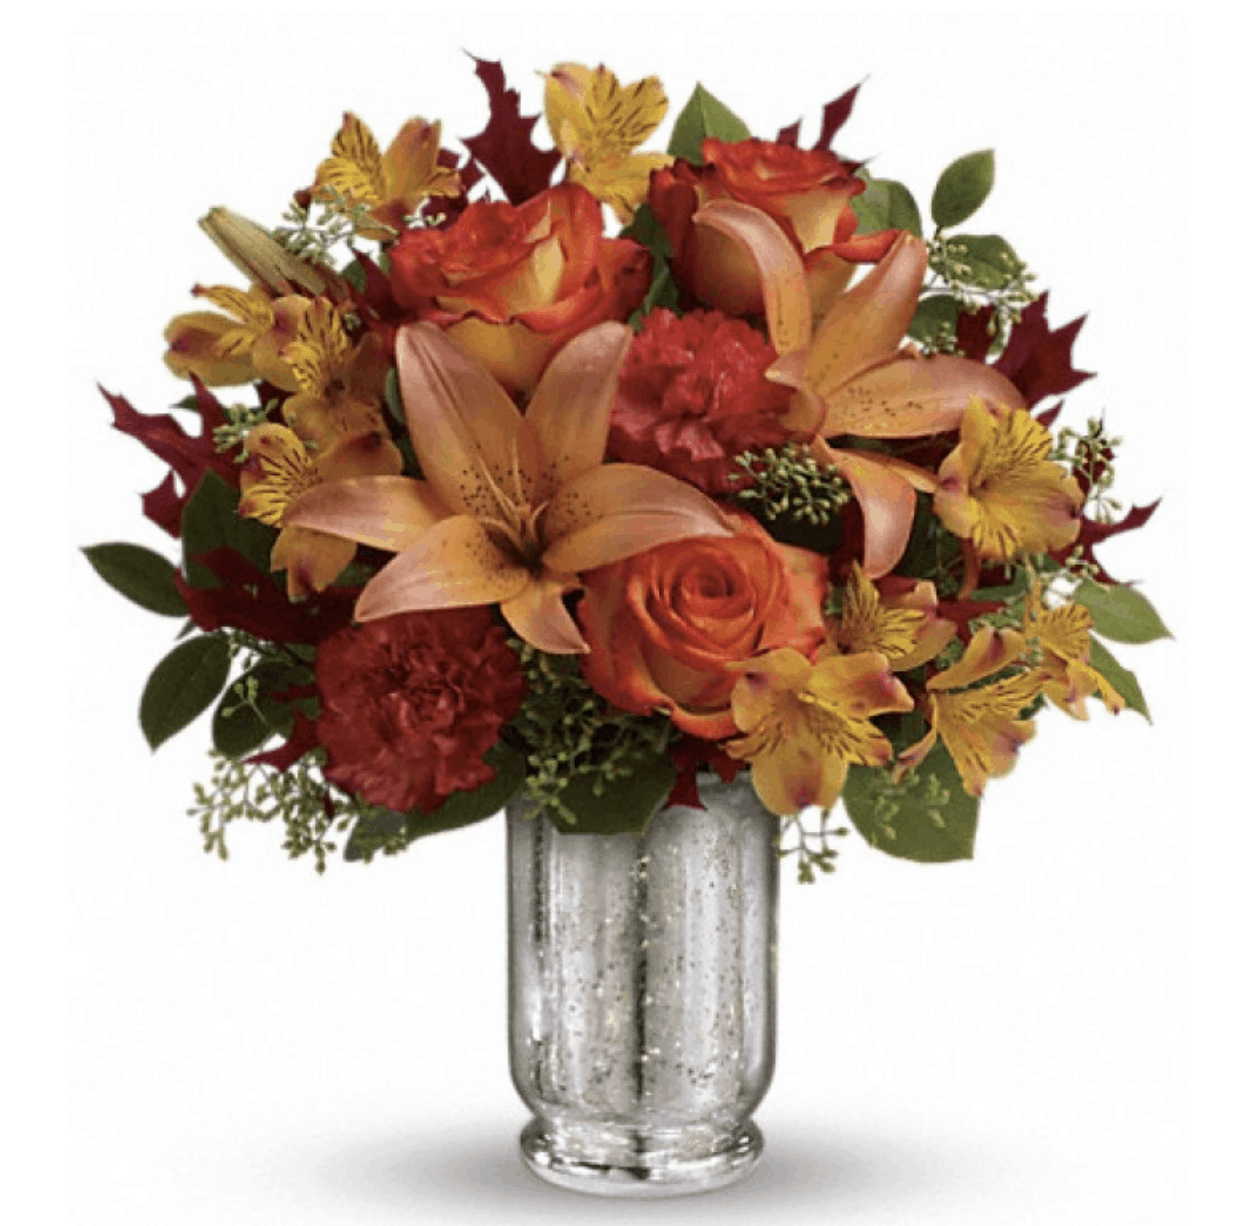 Send Your Love This Thanksgiving with Flowers, Plants, and Gifts